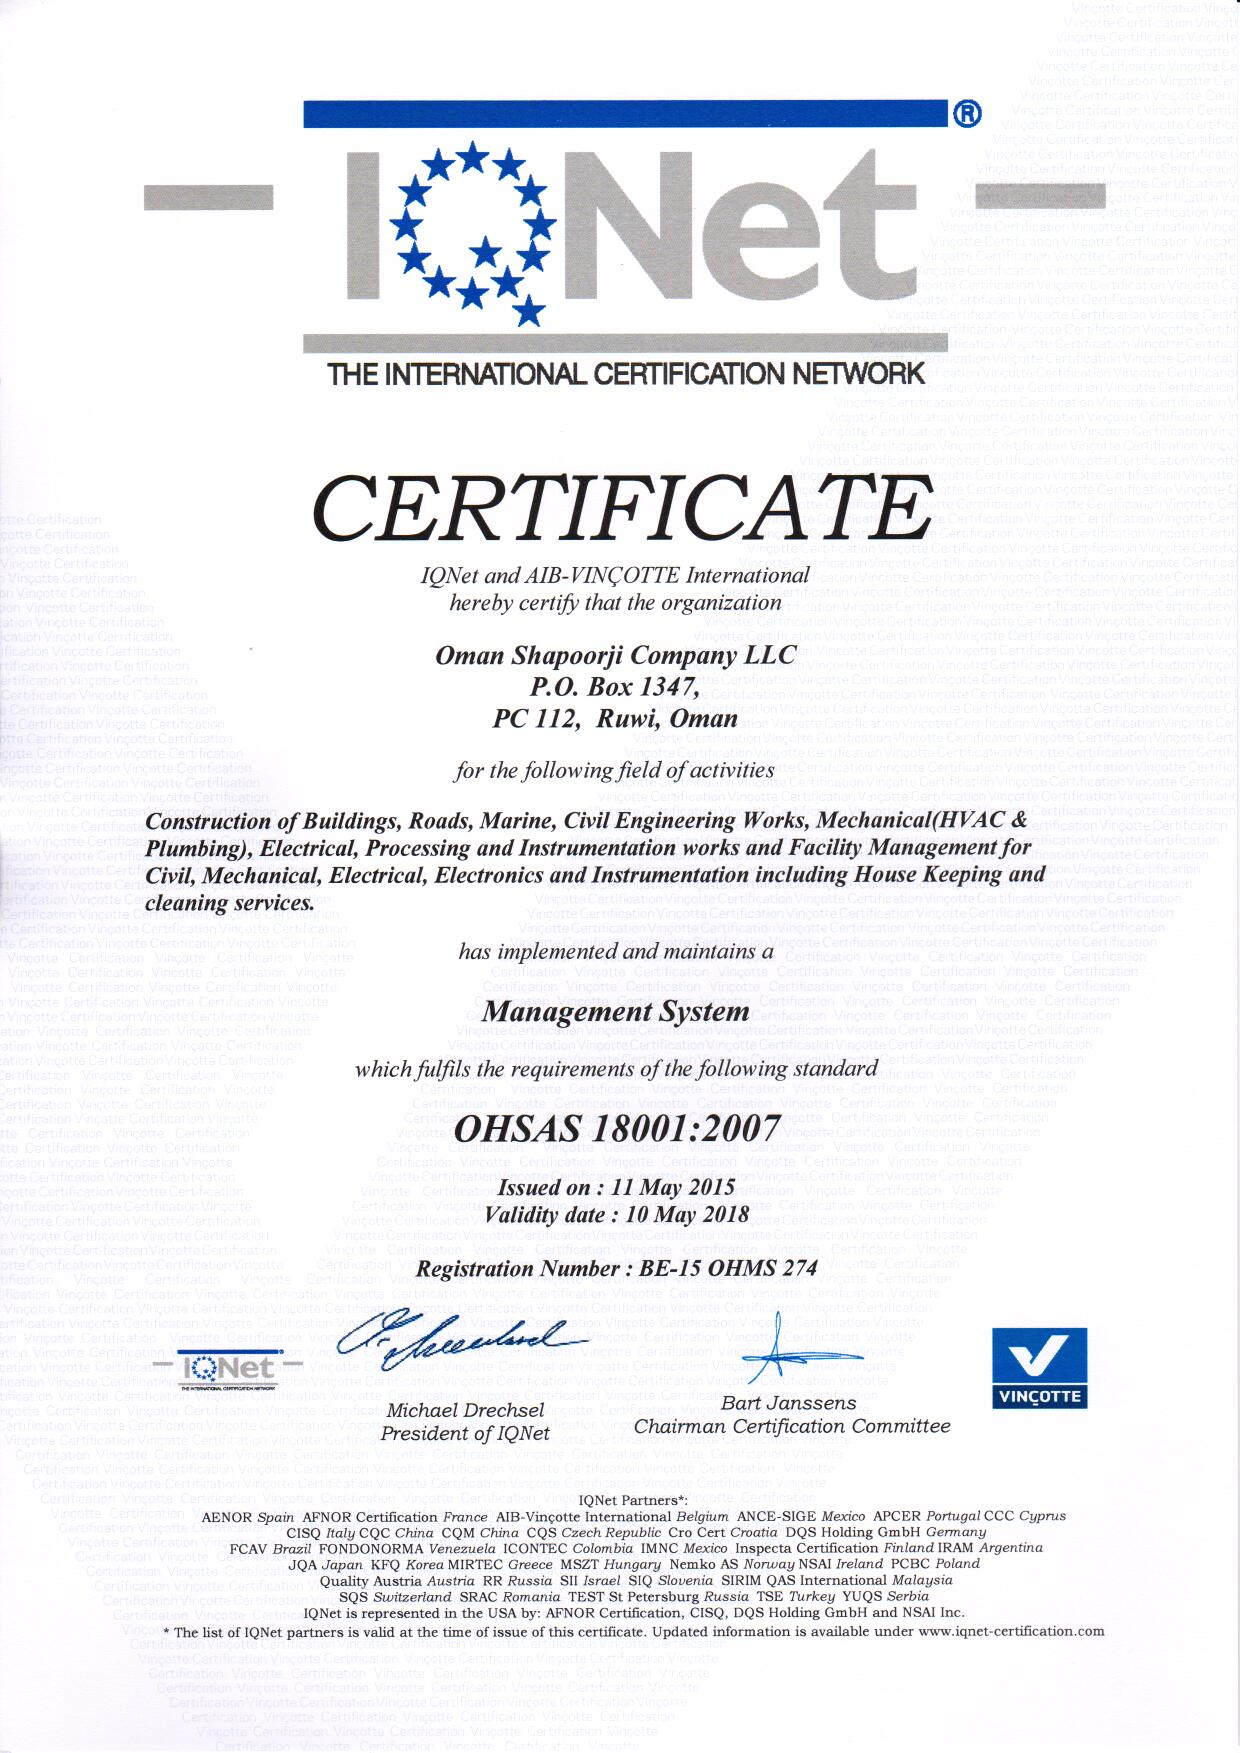 OHSAS 18001 Certificate May 2015 IQNET